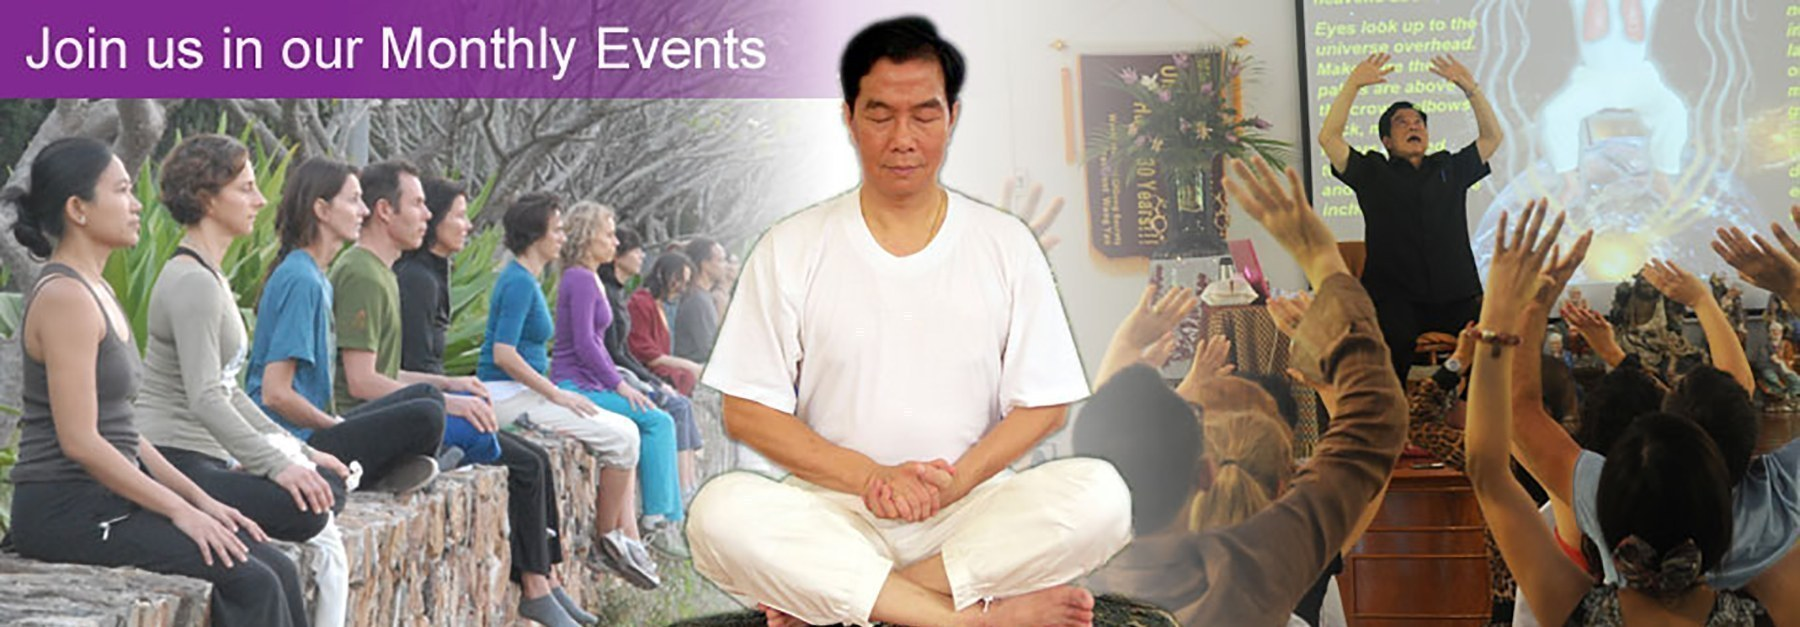 Healing Workshop Tao Garden Thailand – Join us in our Monthly Events